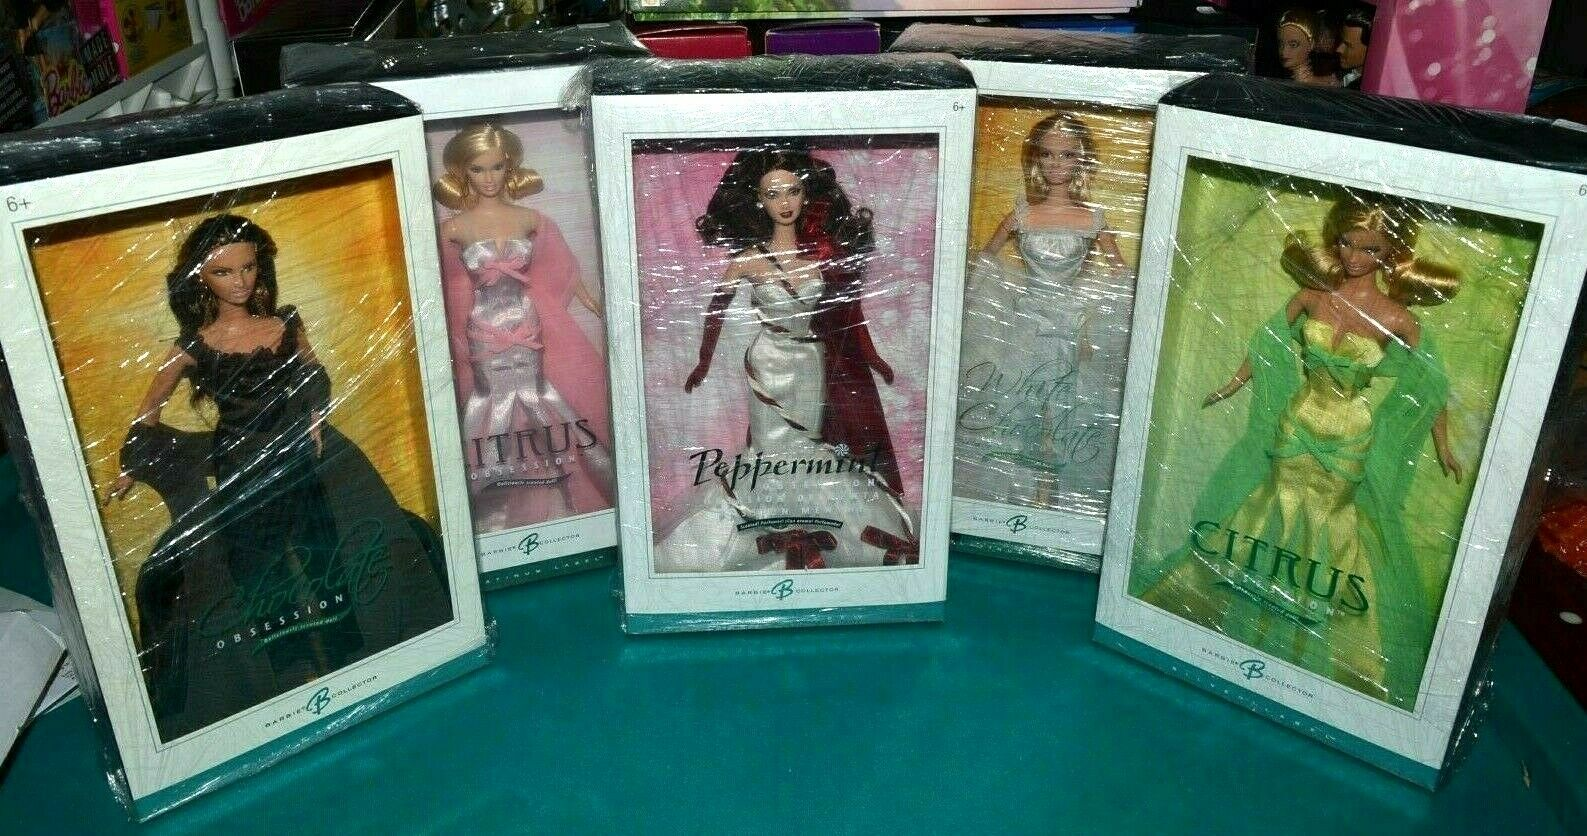 NIB-2005 Weiß, CHOCOLATE, PEPPERMINT, 2X CITRUS OBSESSION BARBIE DOLLS PLATINUM